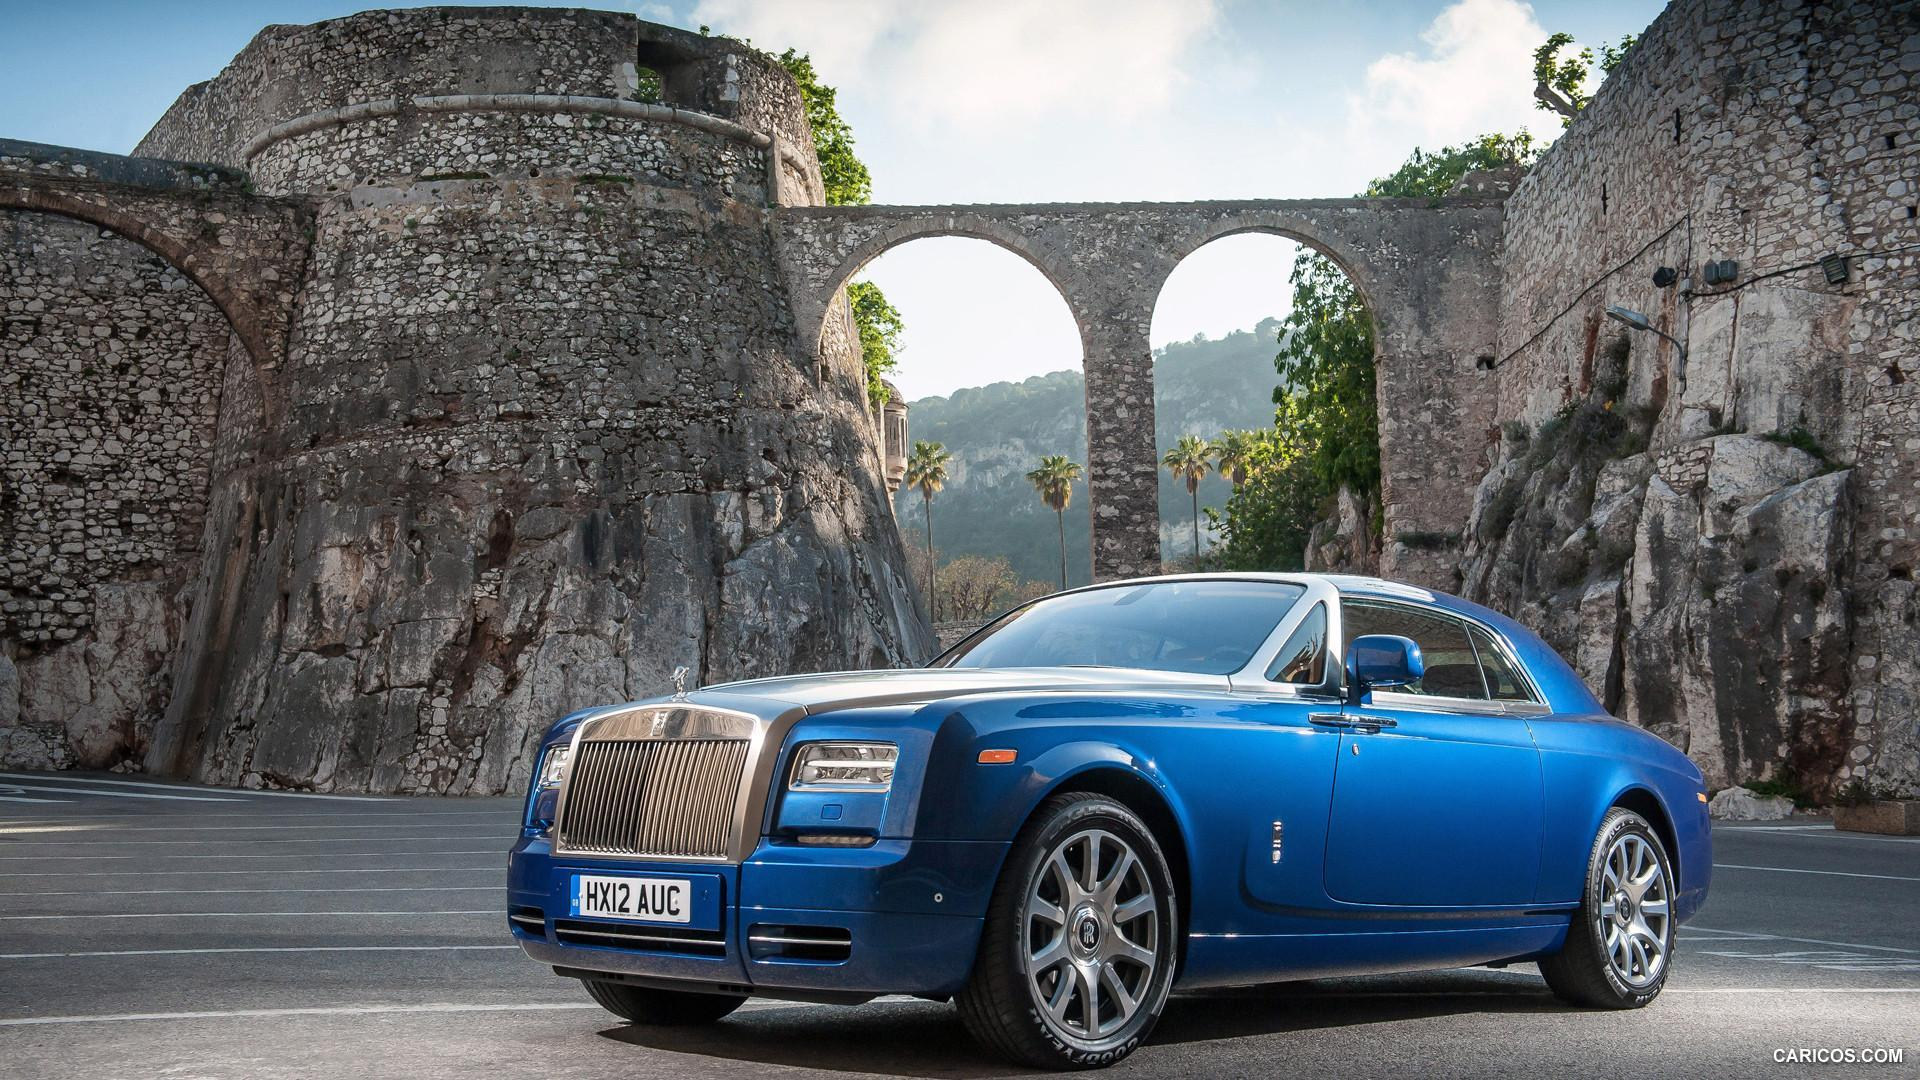 Rolls Royce Car Wallpaper